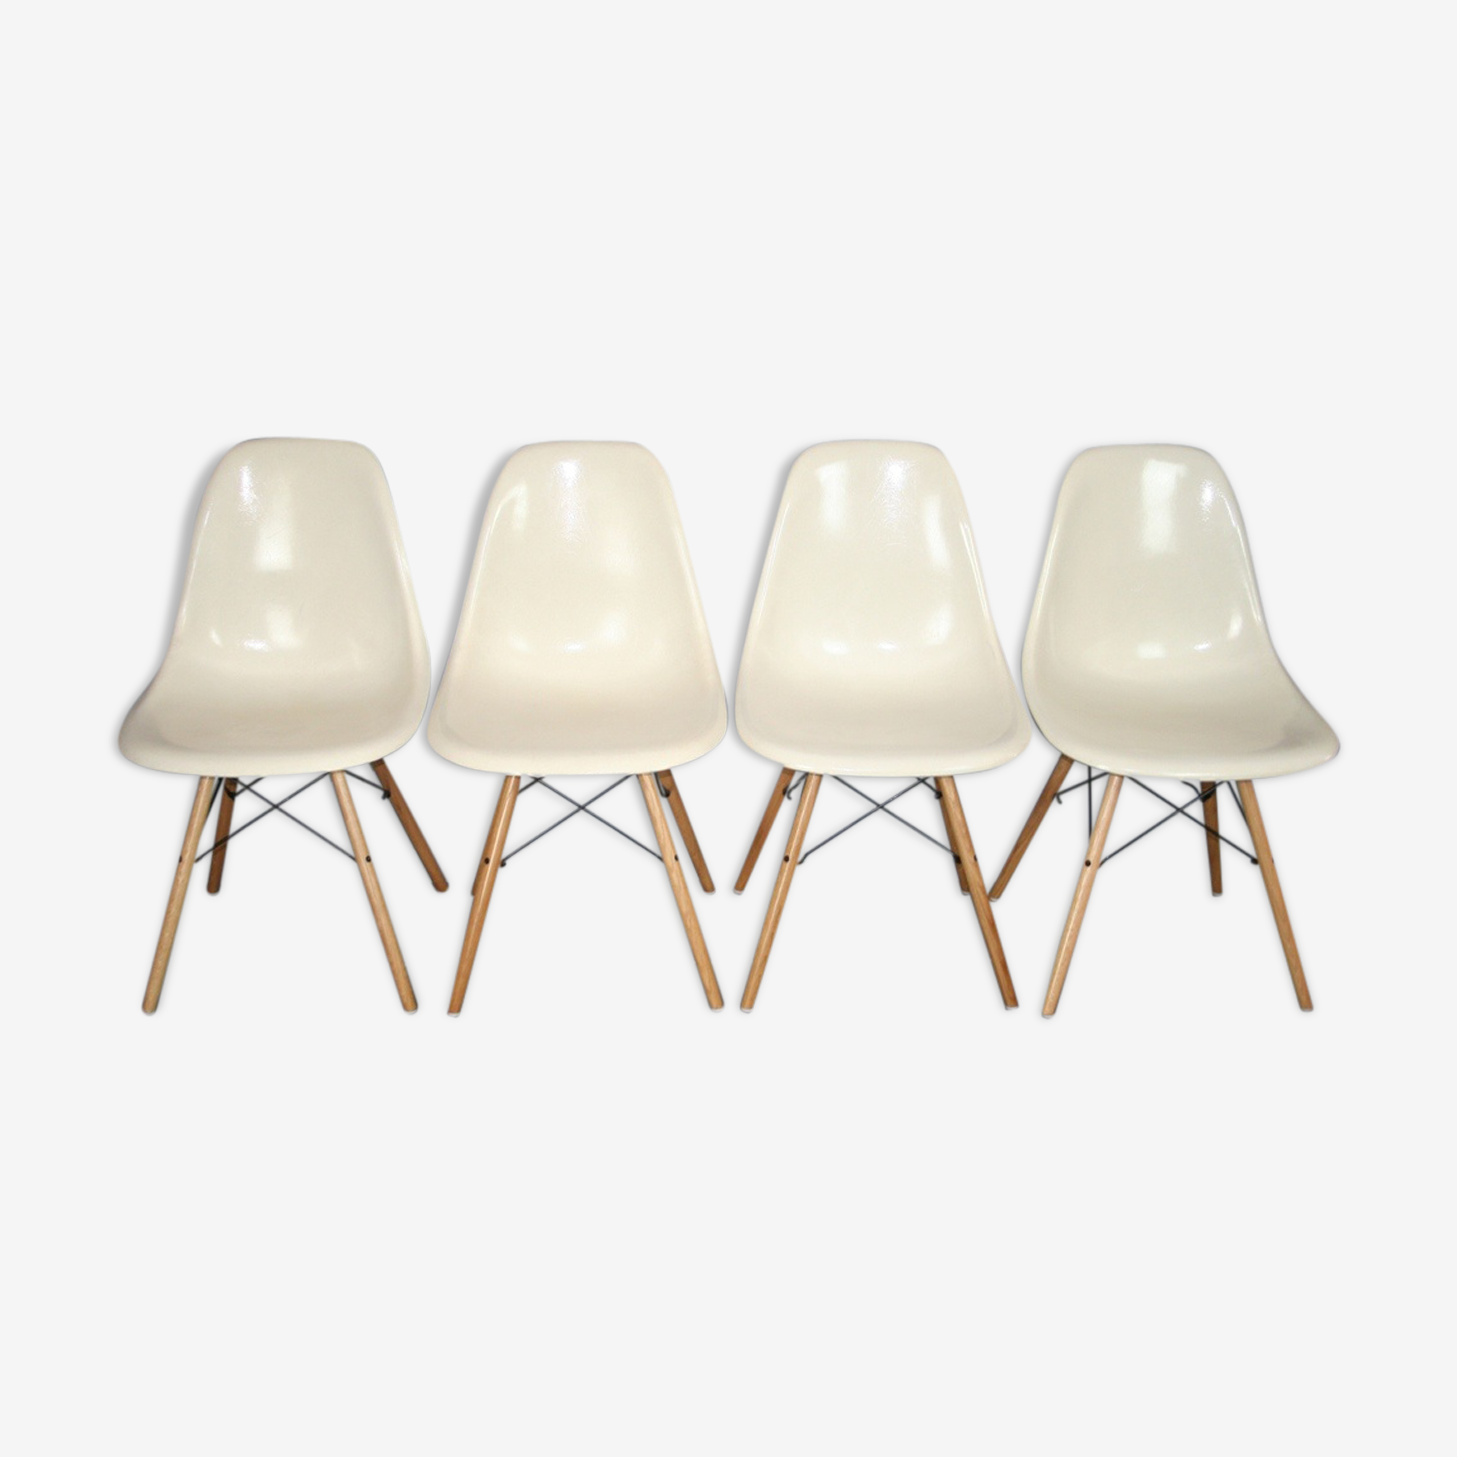 4 chairs dsw Eames Herman Miller